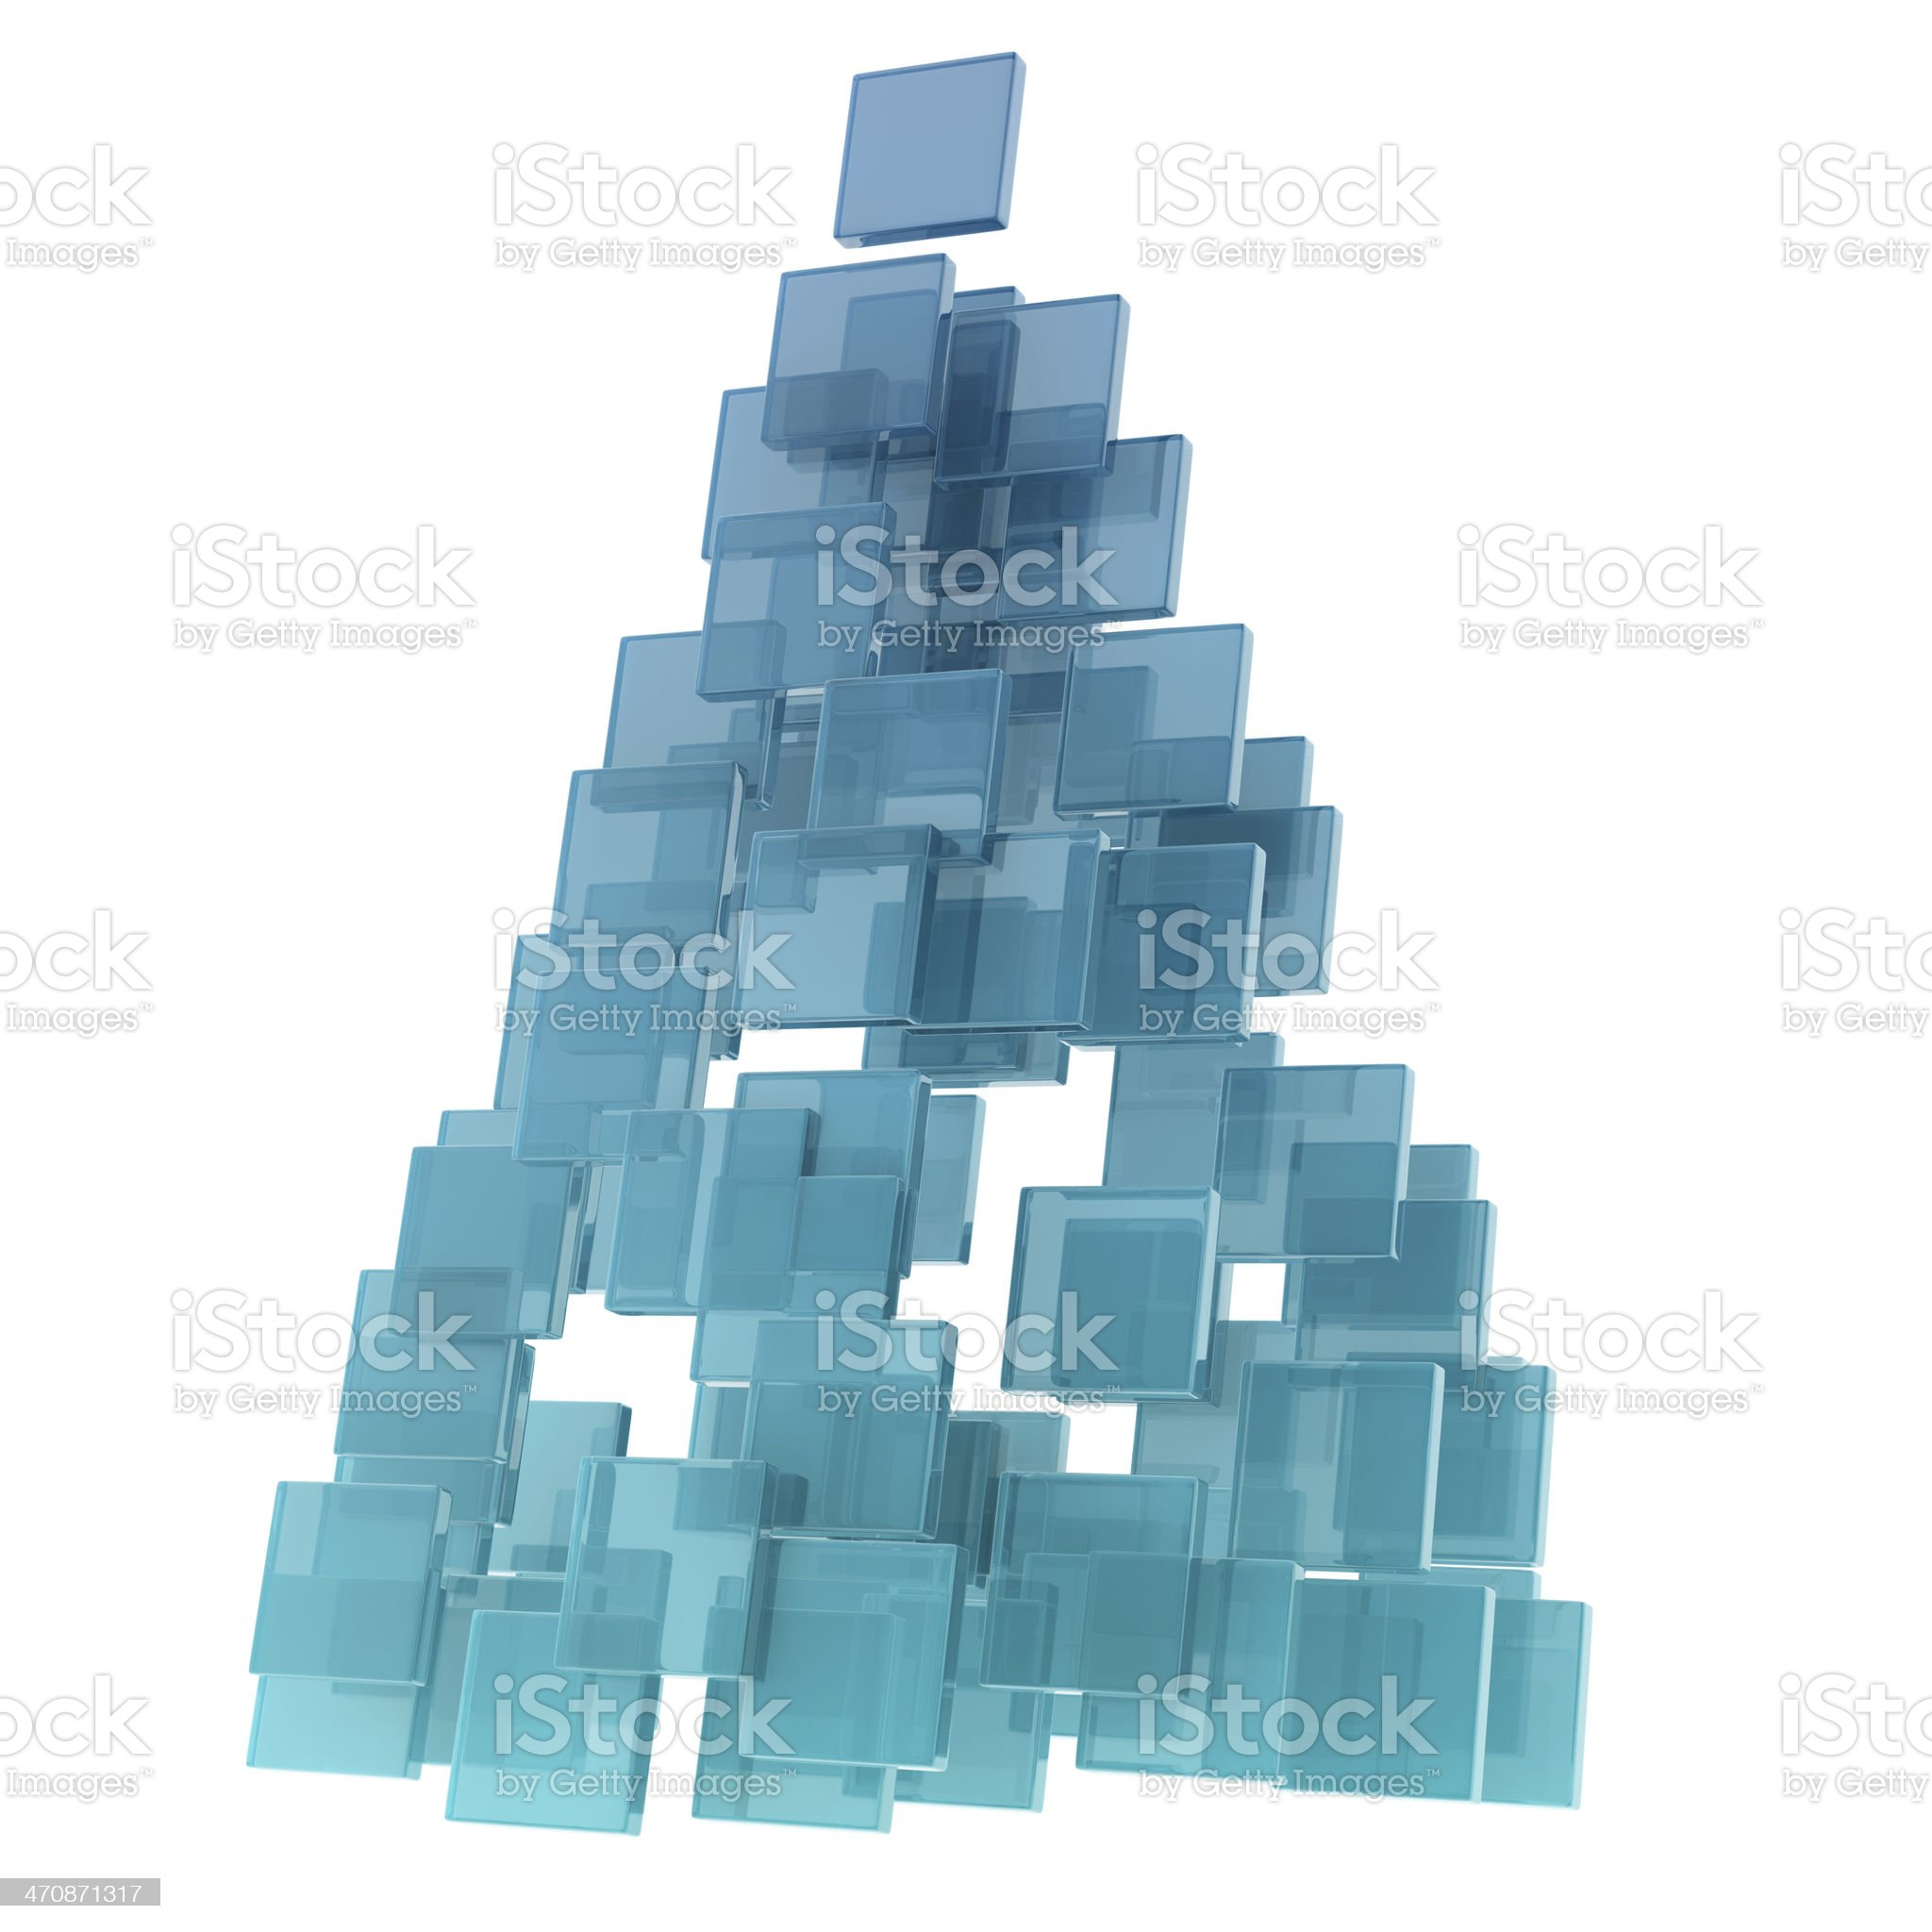 glass cubes royalty-free stock photo